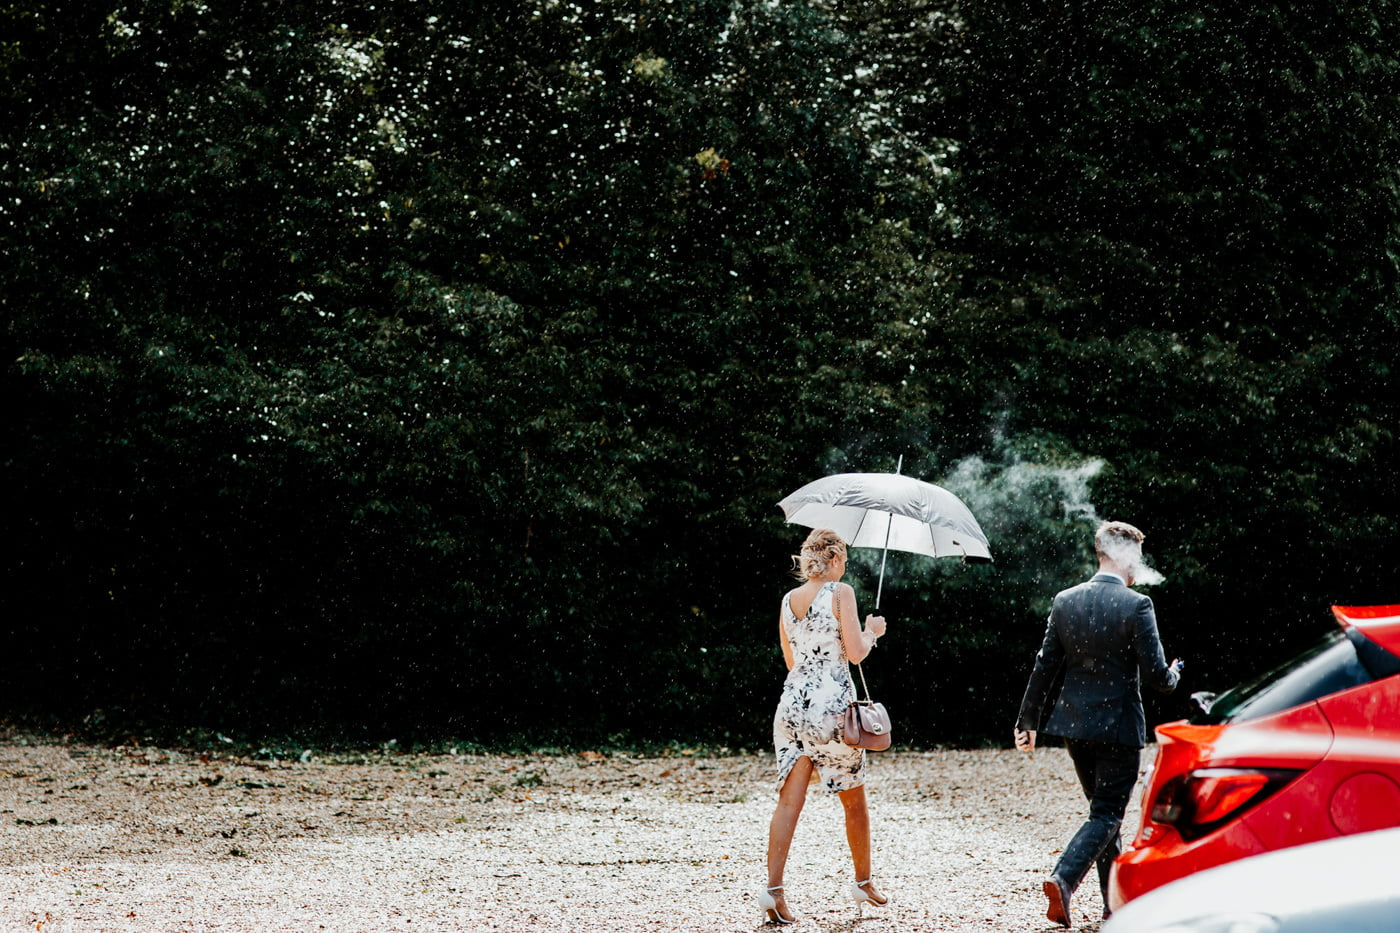 Leanne and Scott / Elmhay Park, Somerset 63